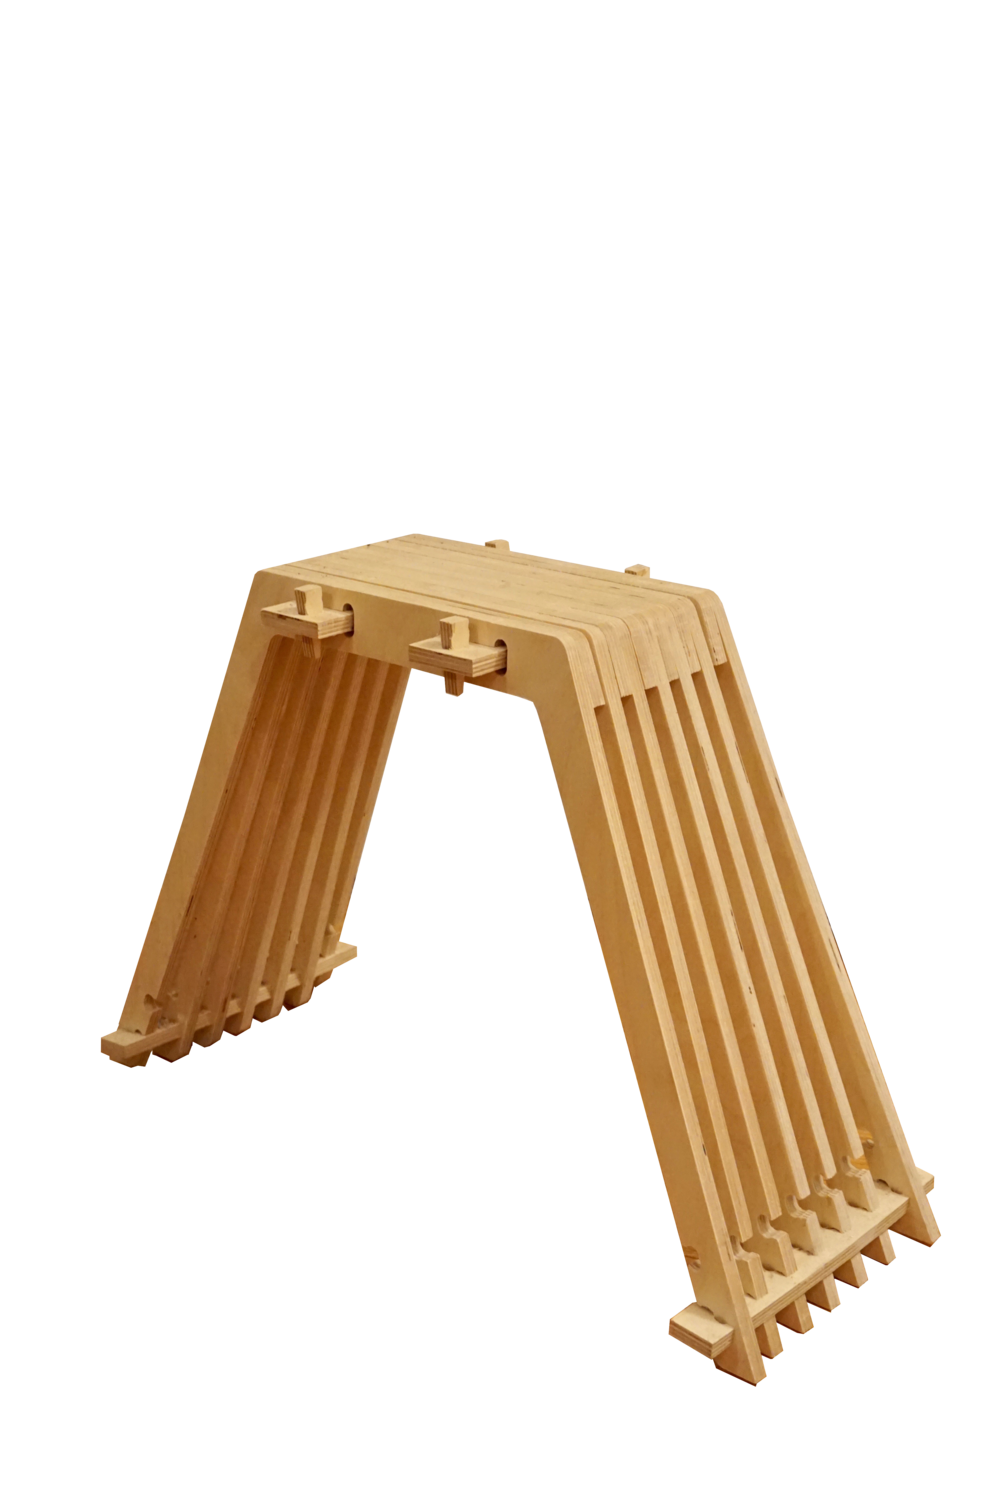 cnc-table (1).png